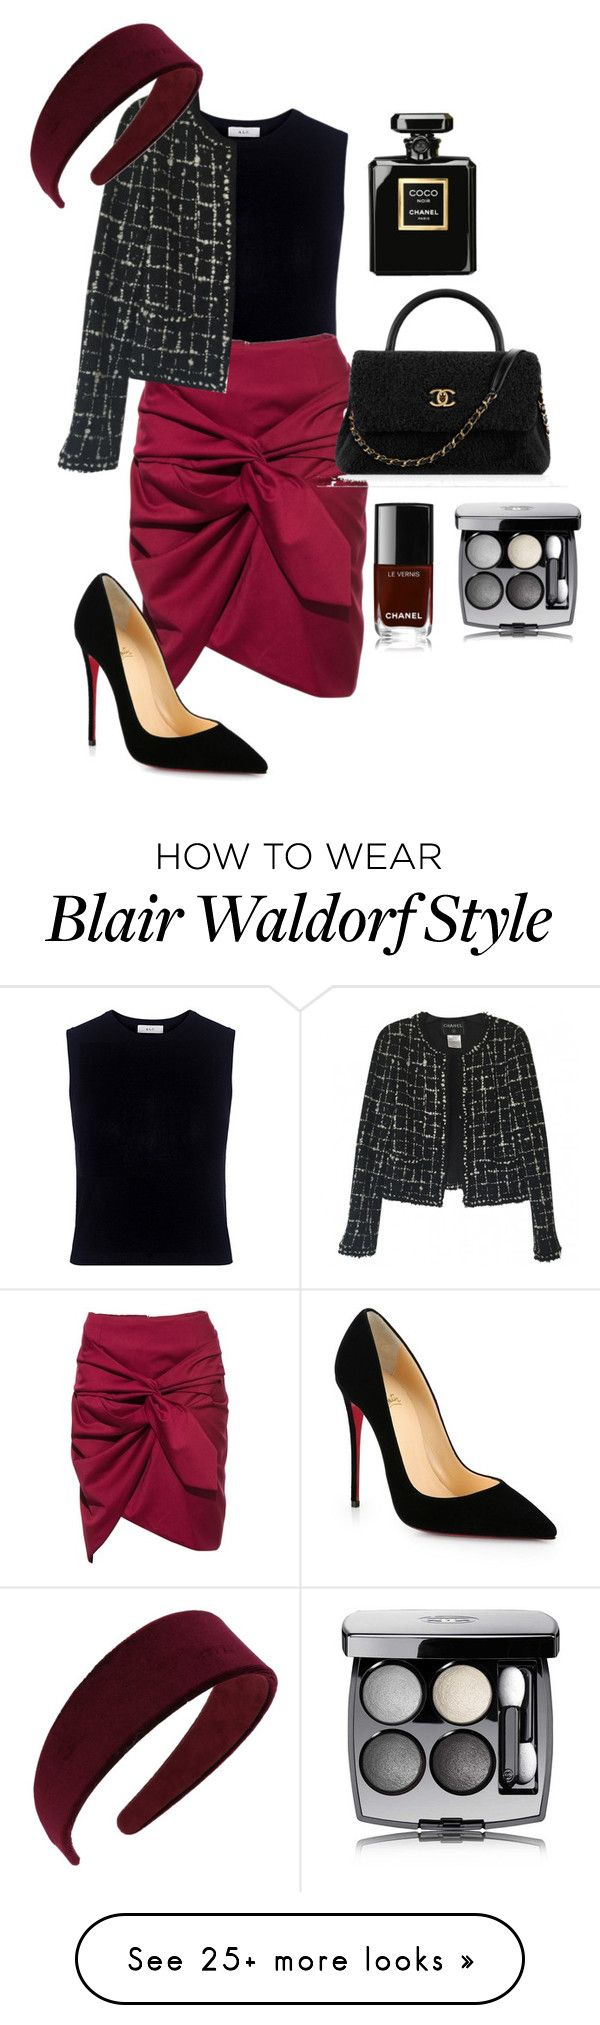 """""""do it like blair waldorf"""" by romydveen on Polyvore featuring A.L.C., Christian Louboutin, Chanel, Miss Selfridge and blair"""